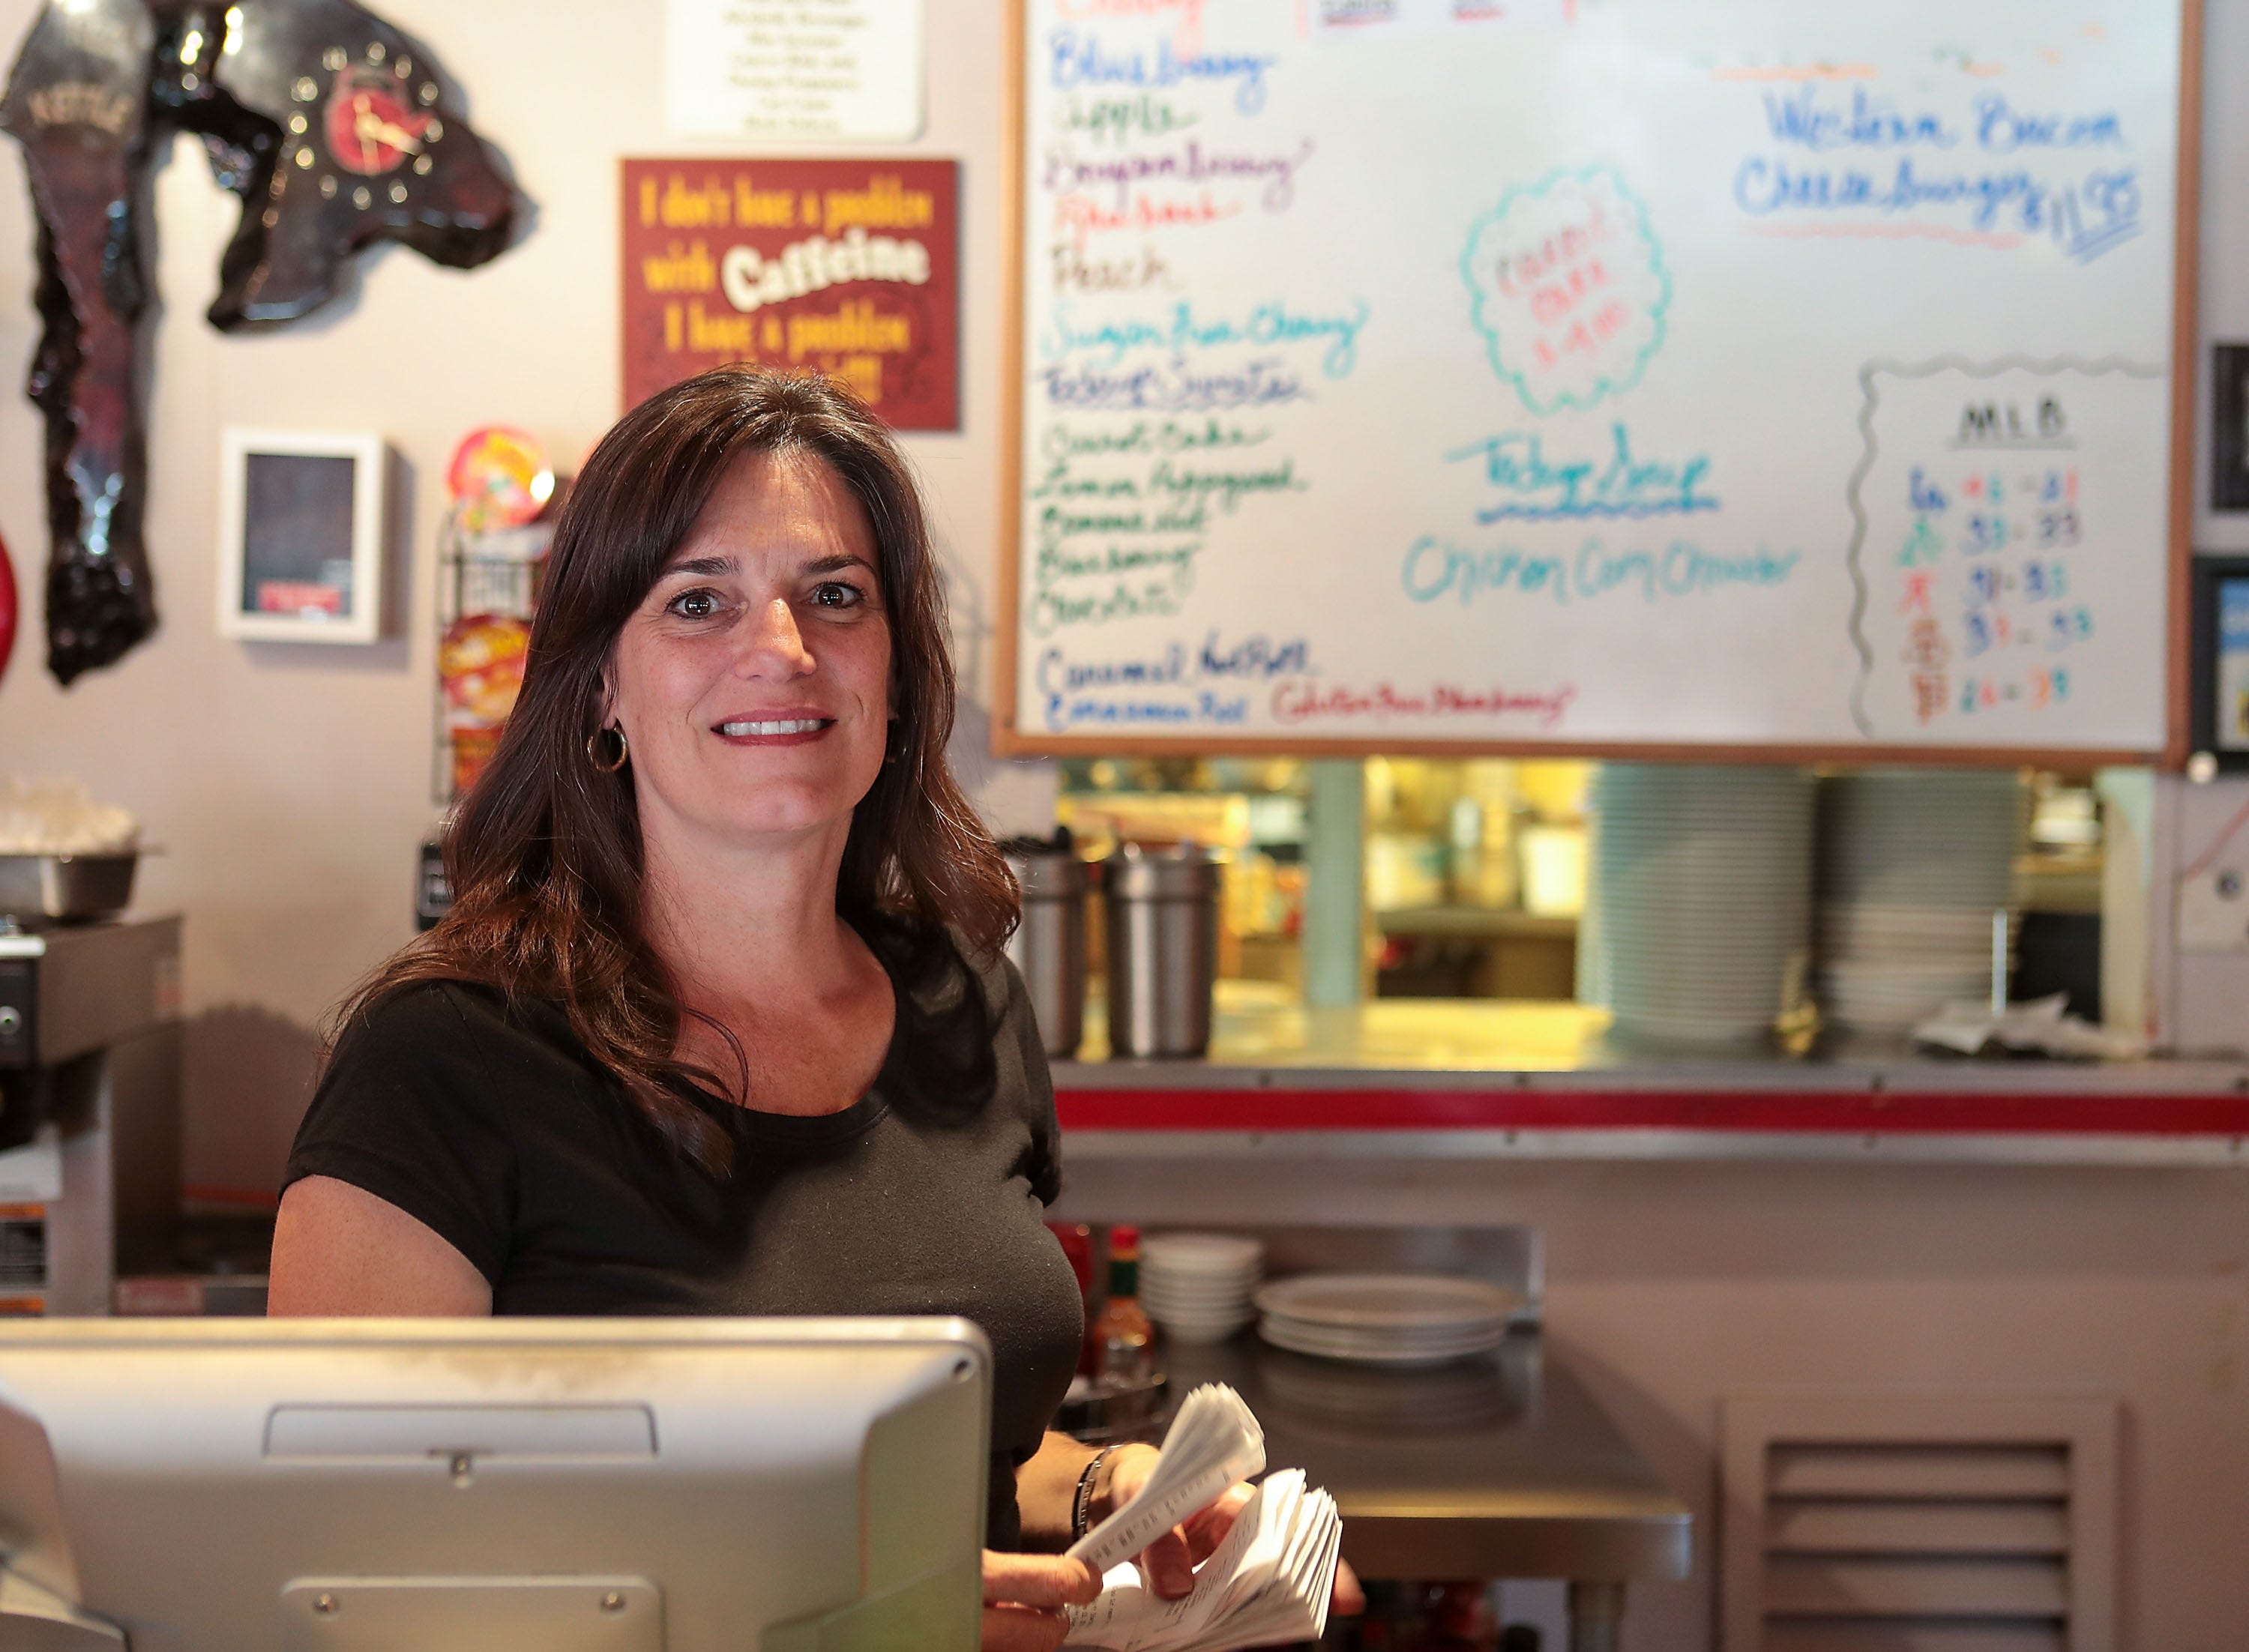 Annie Weaver owns the Red Kettle restaurant in Idyllwild.